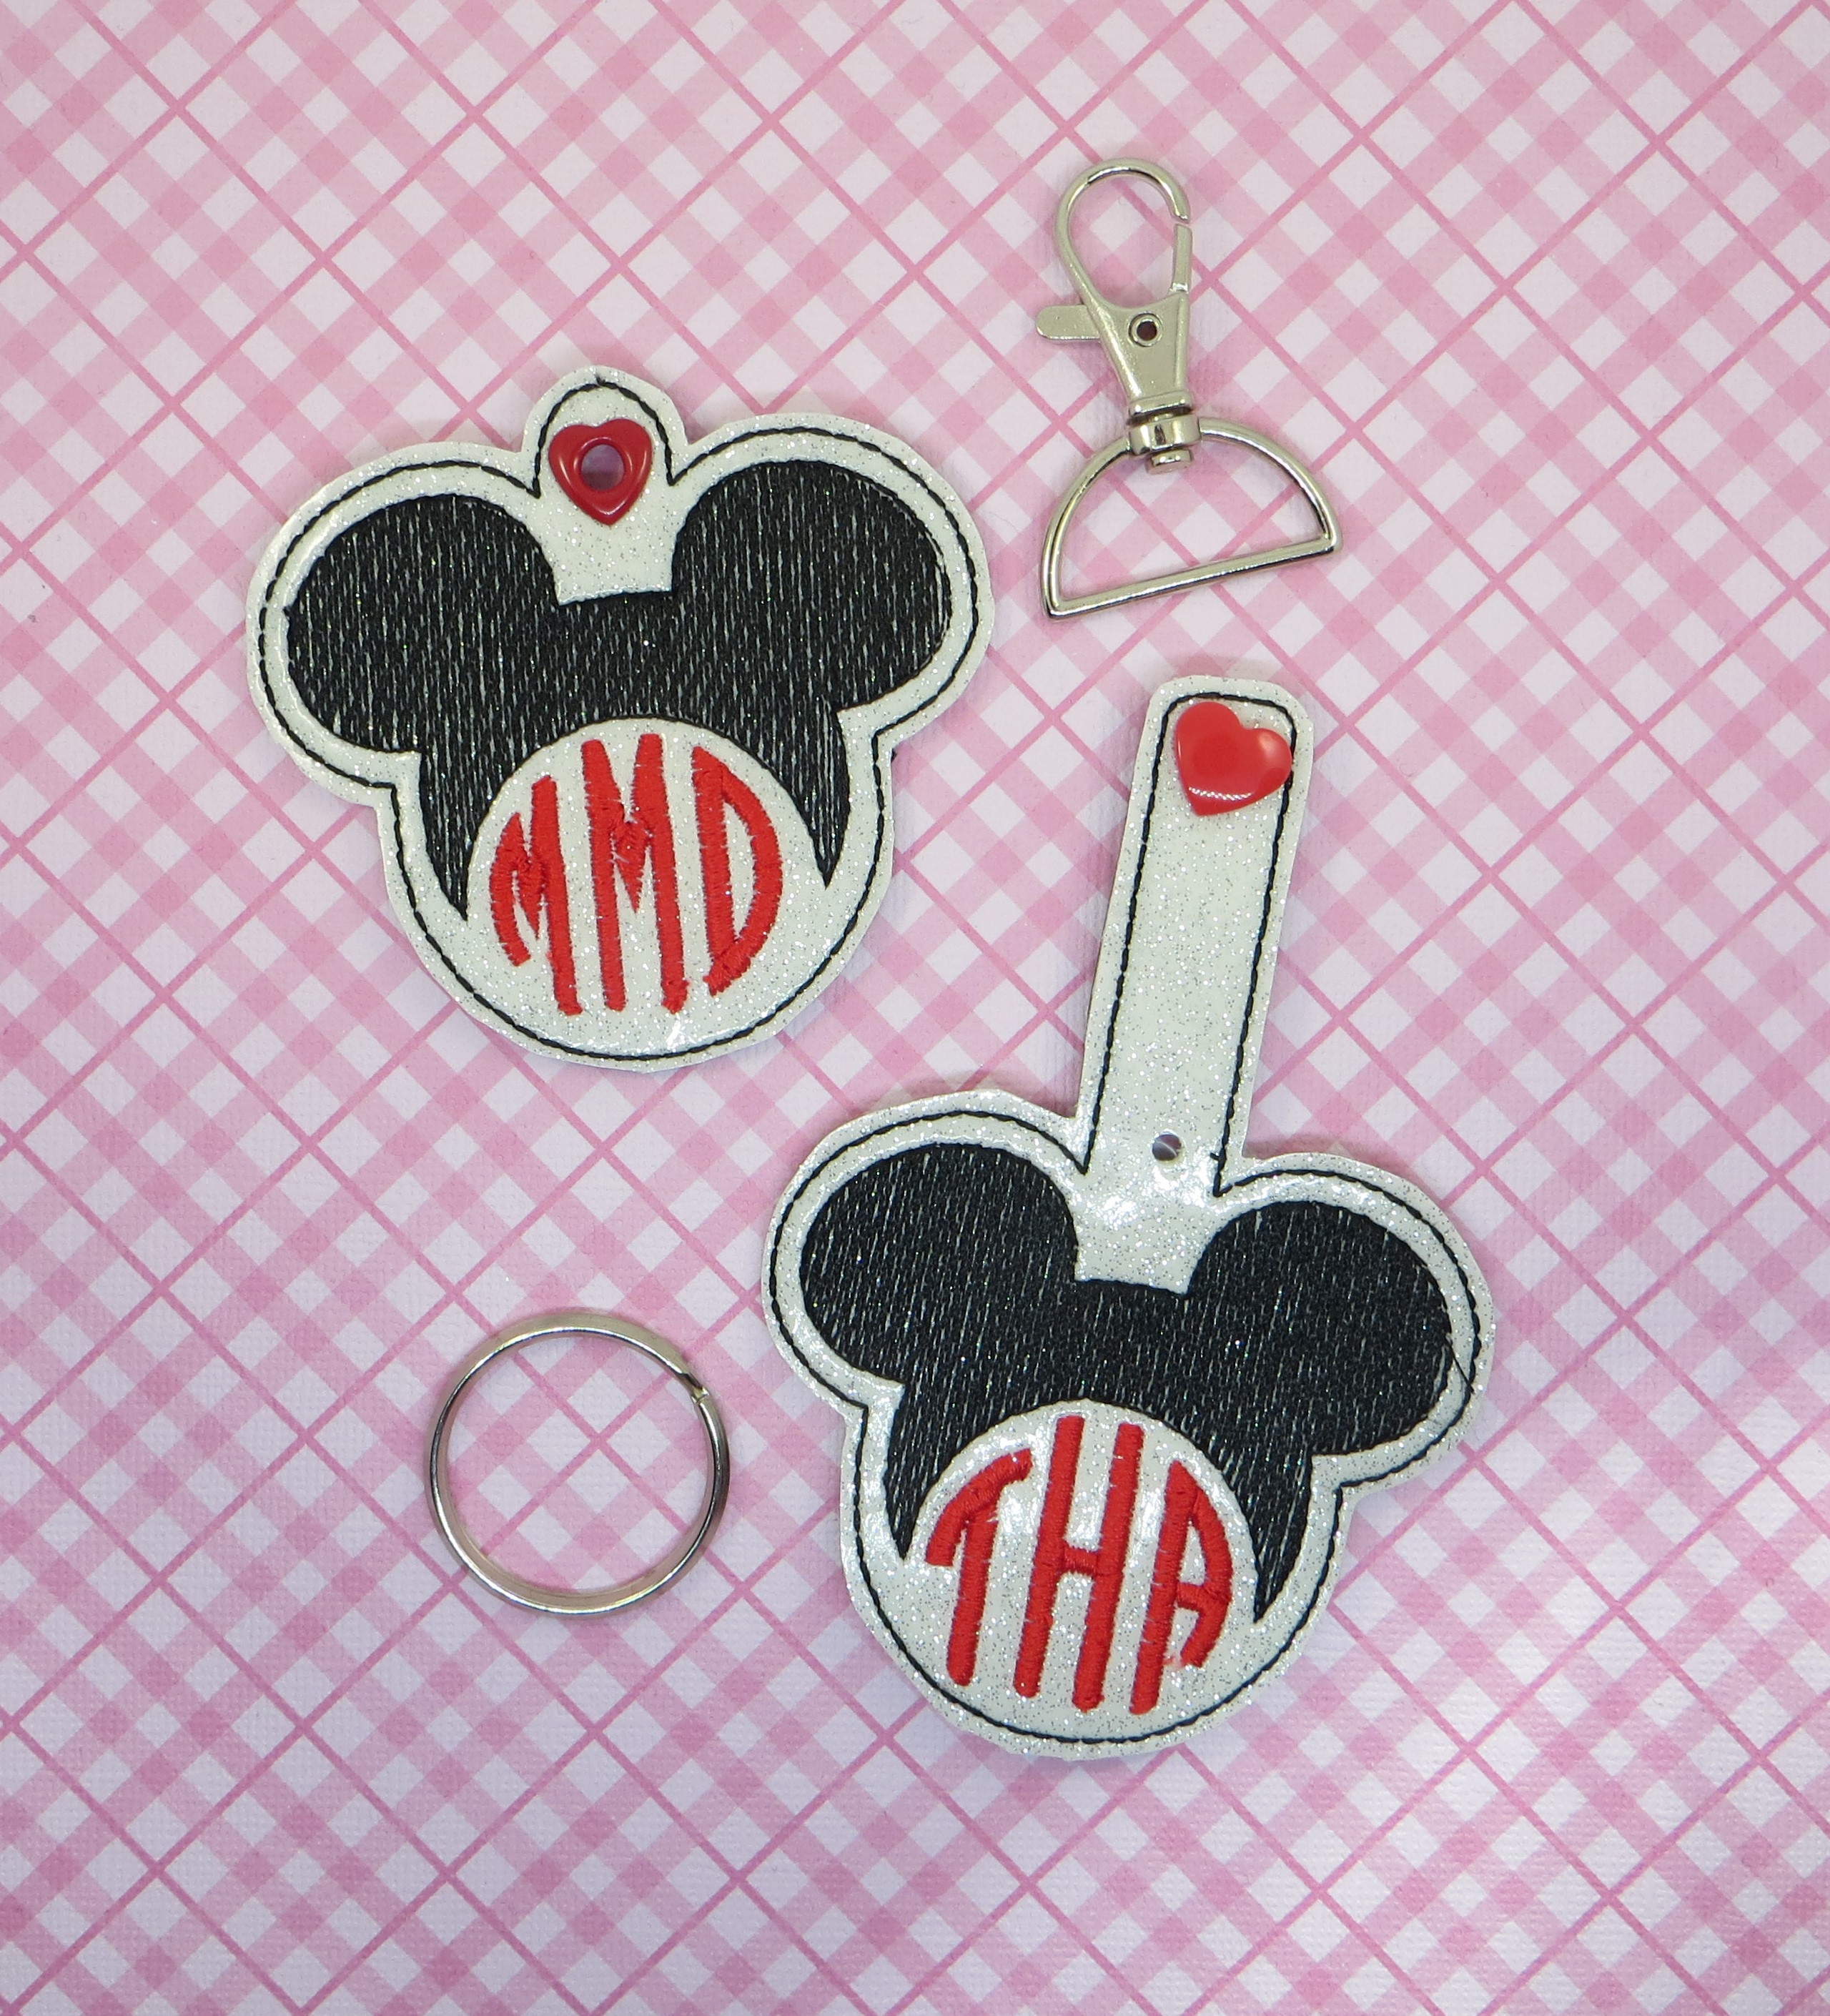 Mr Mouse Monogram Snaptab / Keyfob Embroidery Design